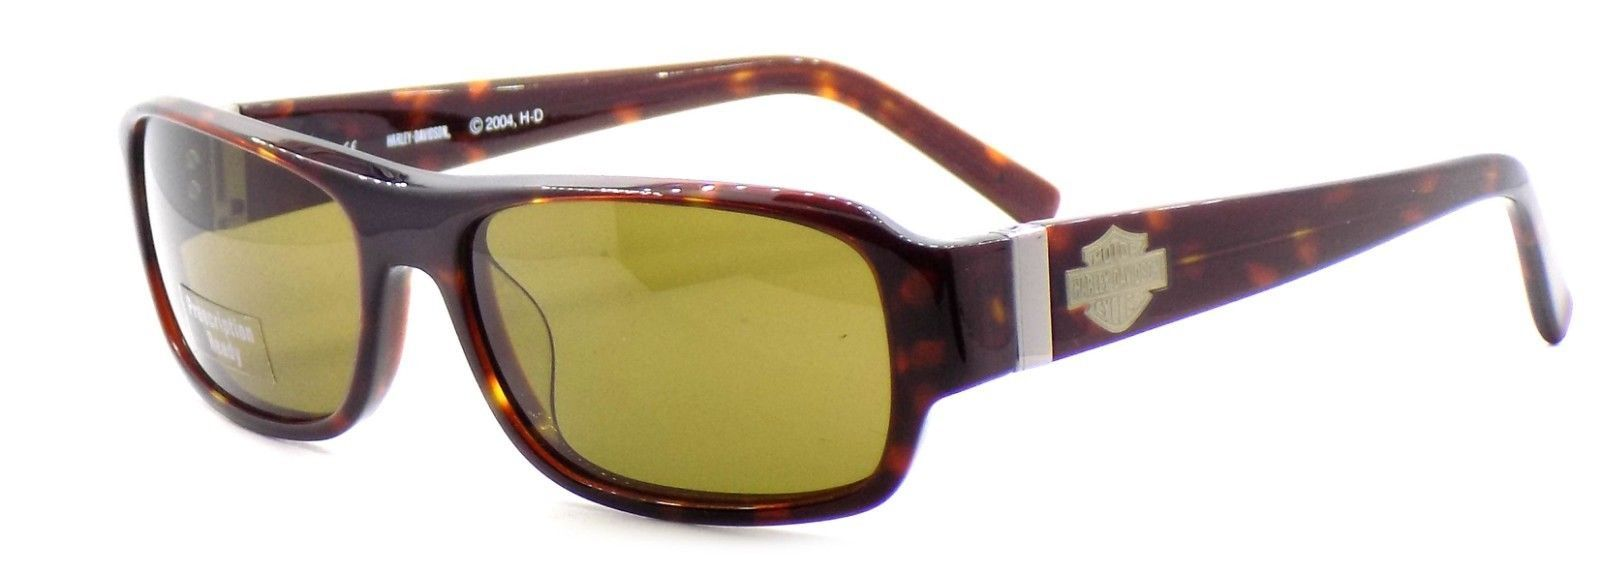 9dceeff1be4f Harley Davidson HDX801 TO Sunglasses and 50 similar items